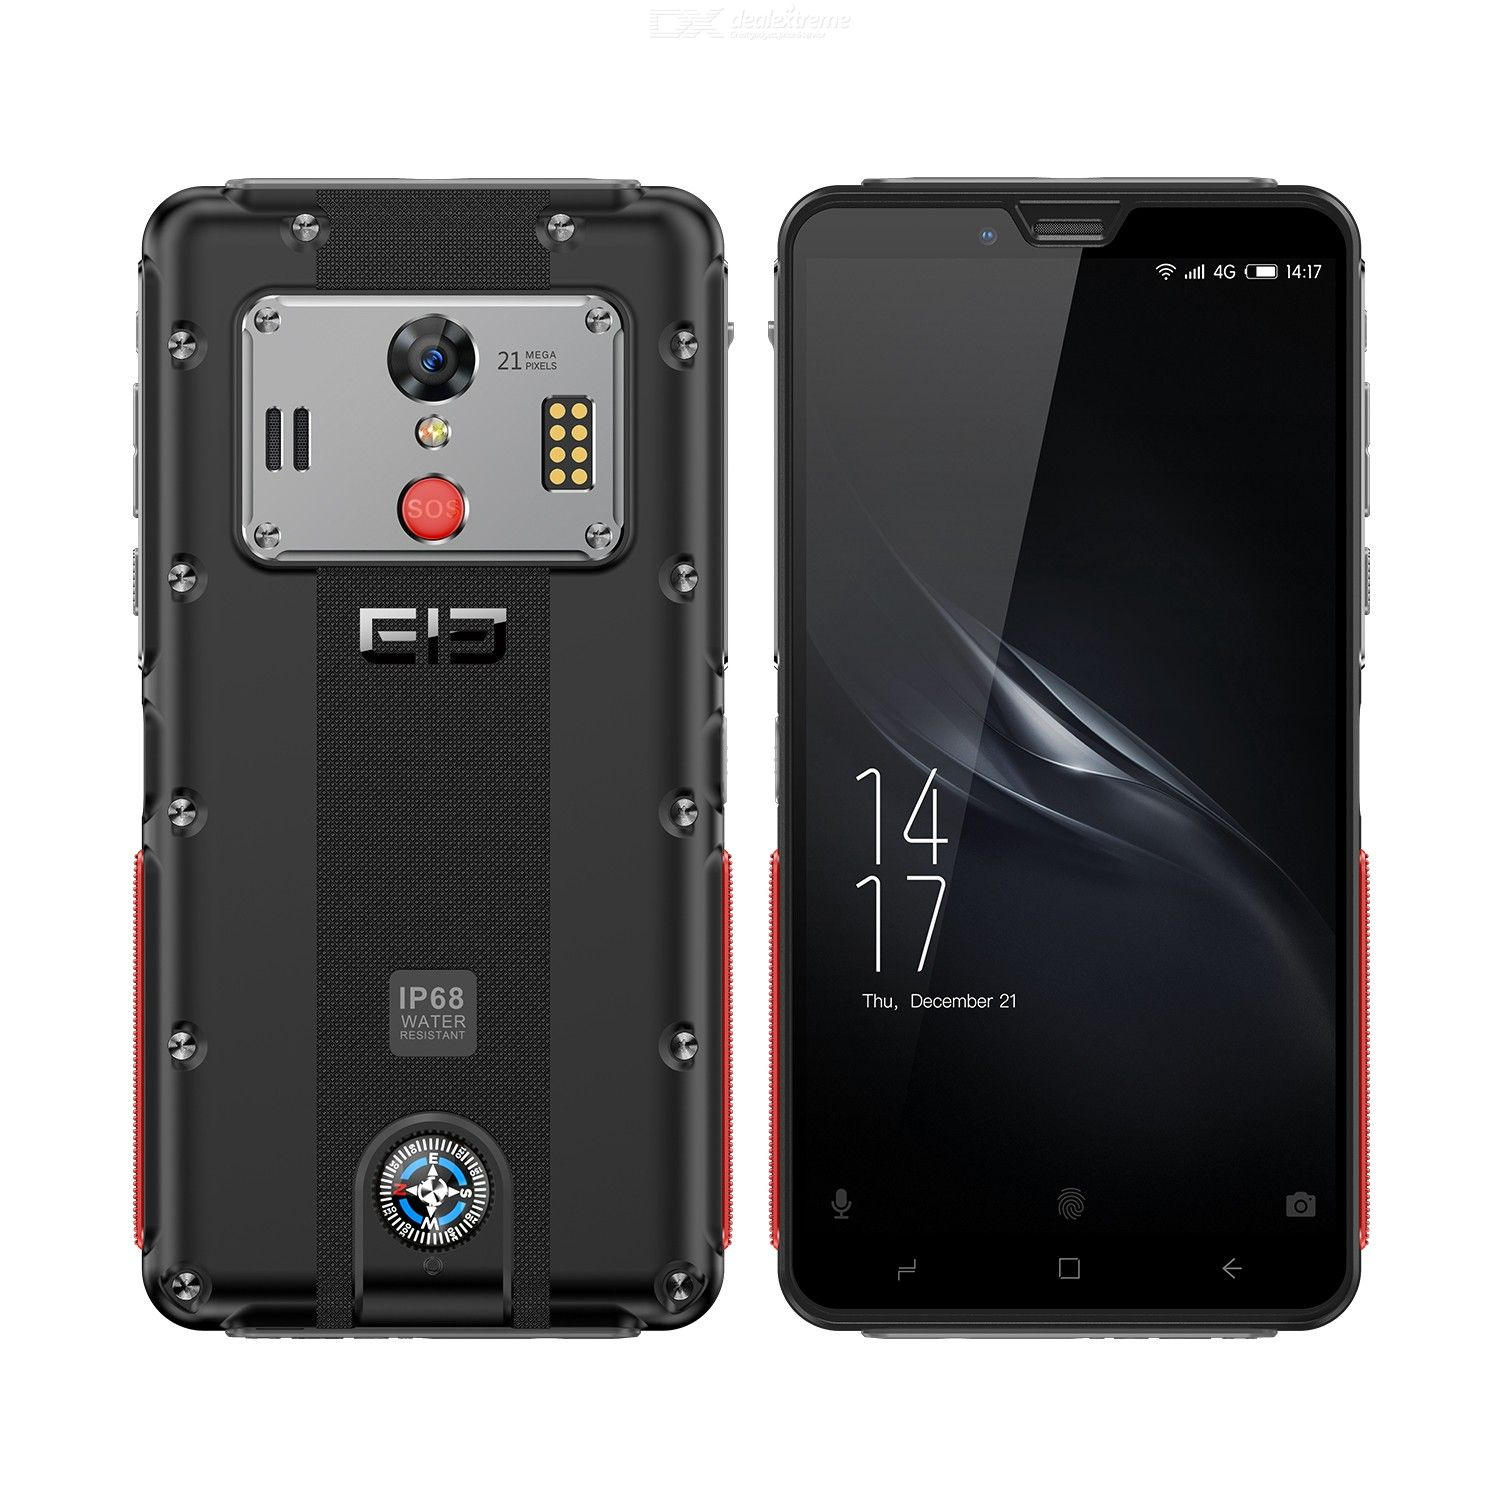 Elephone Soldier 4G LTE Phone 2K Screen 4GB RAM 128GB ROM IP68 Waterproof 5000mAh Smartphone